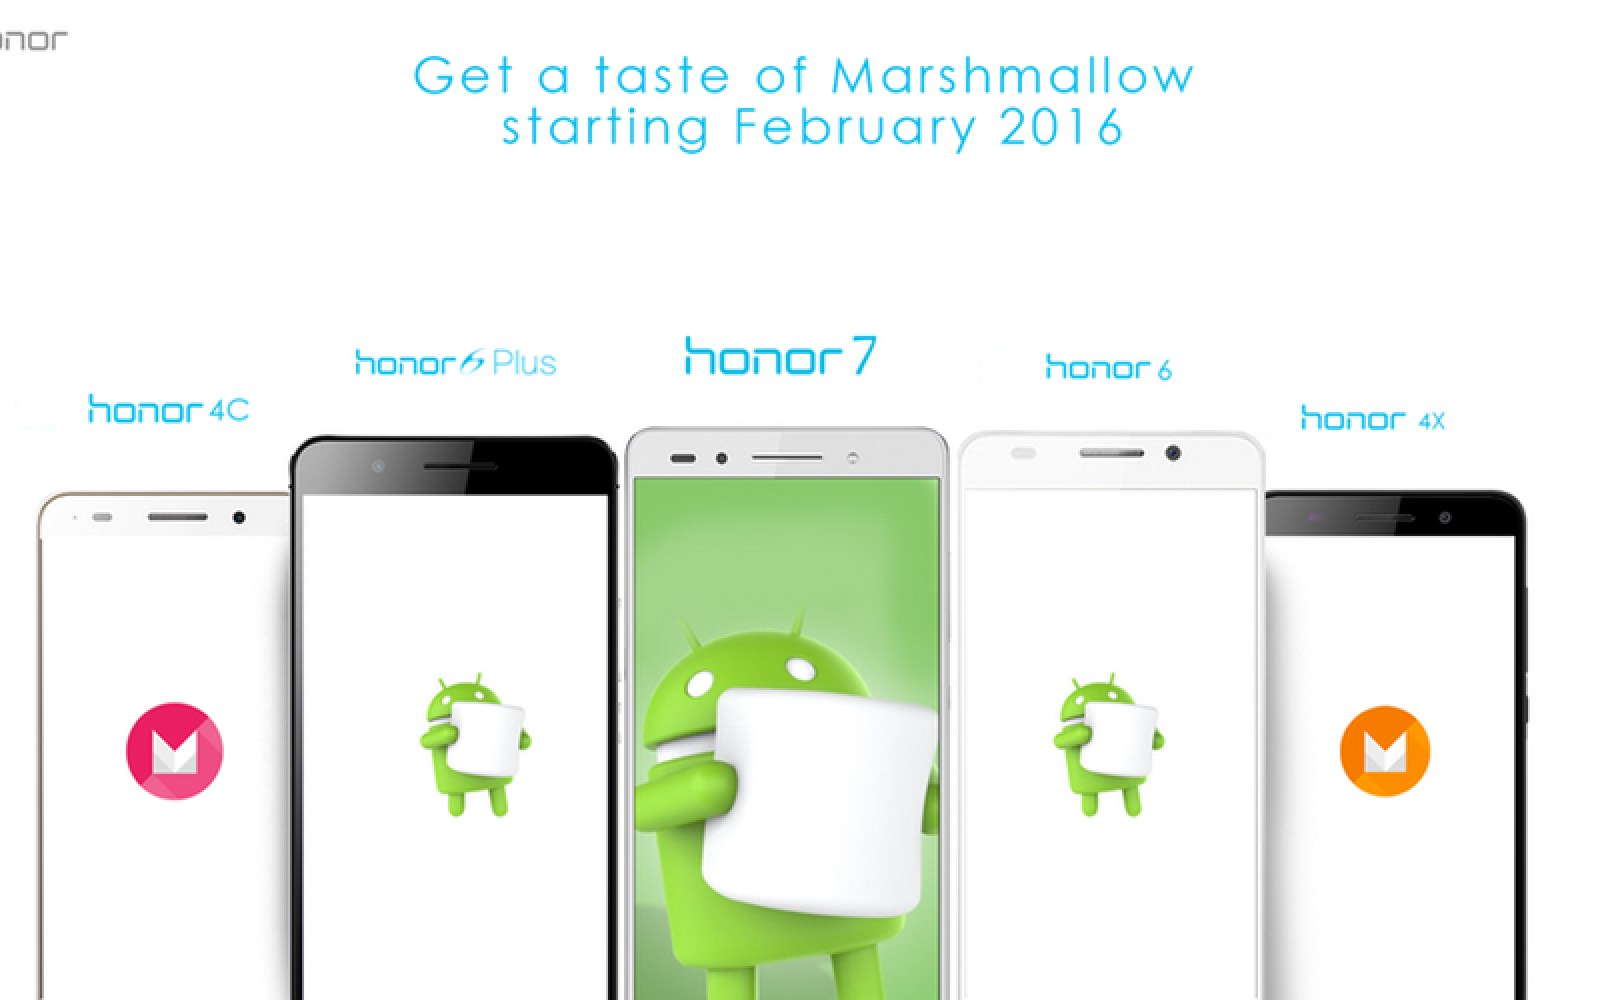 Huawei's Honor handsets getting Android 6.0 Marshmallow update in February 2016